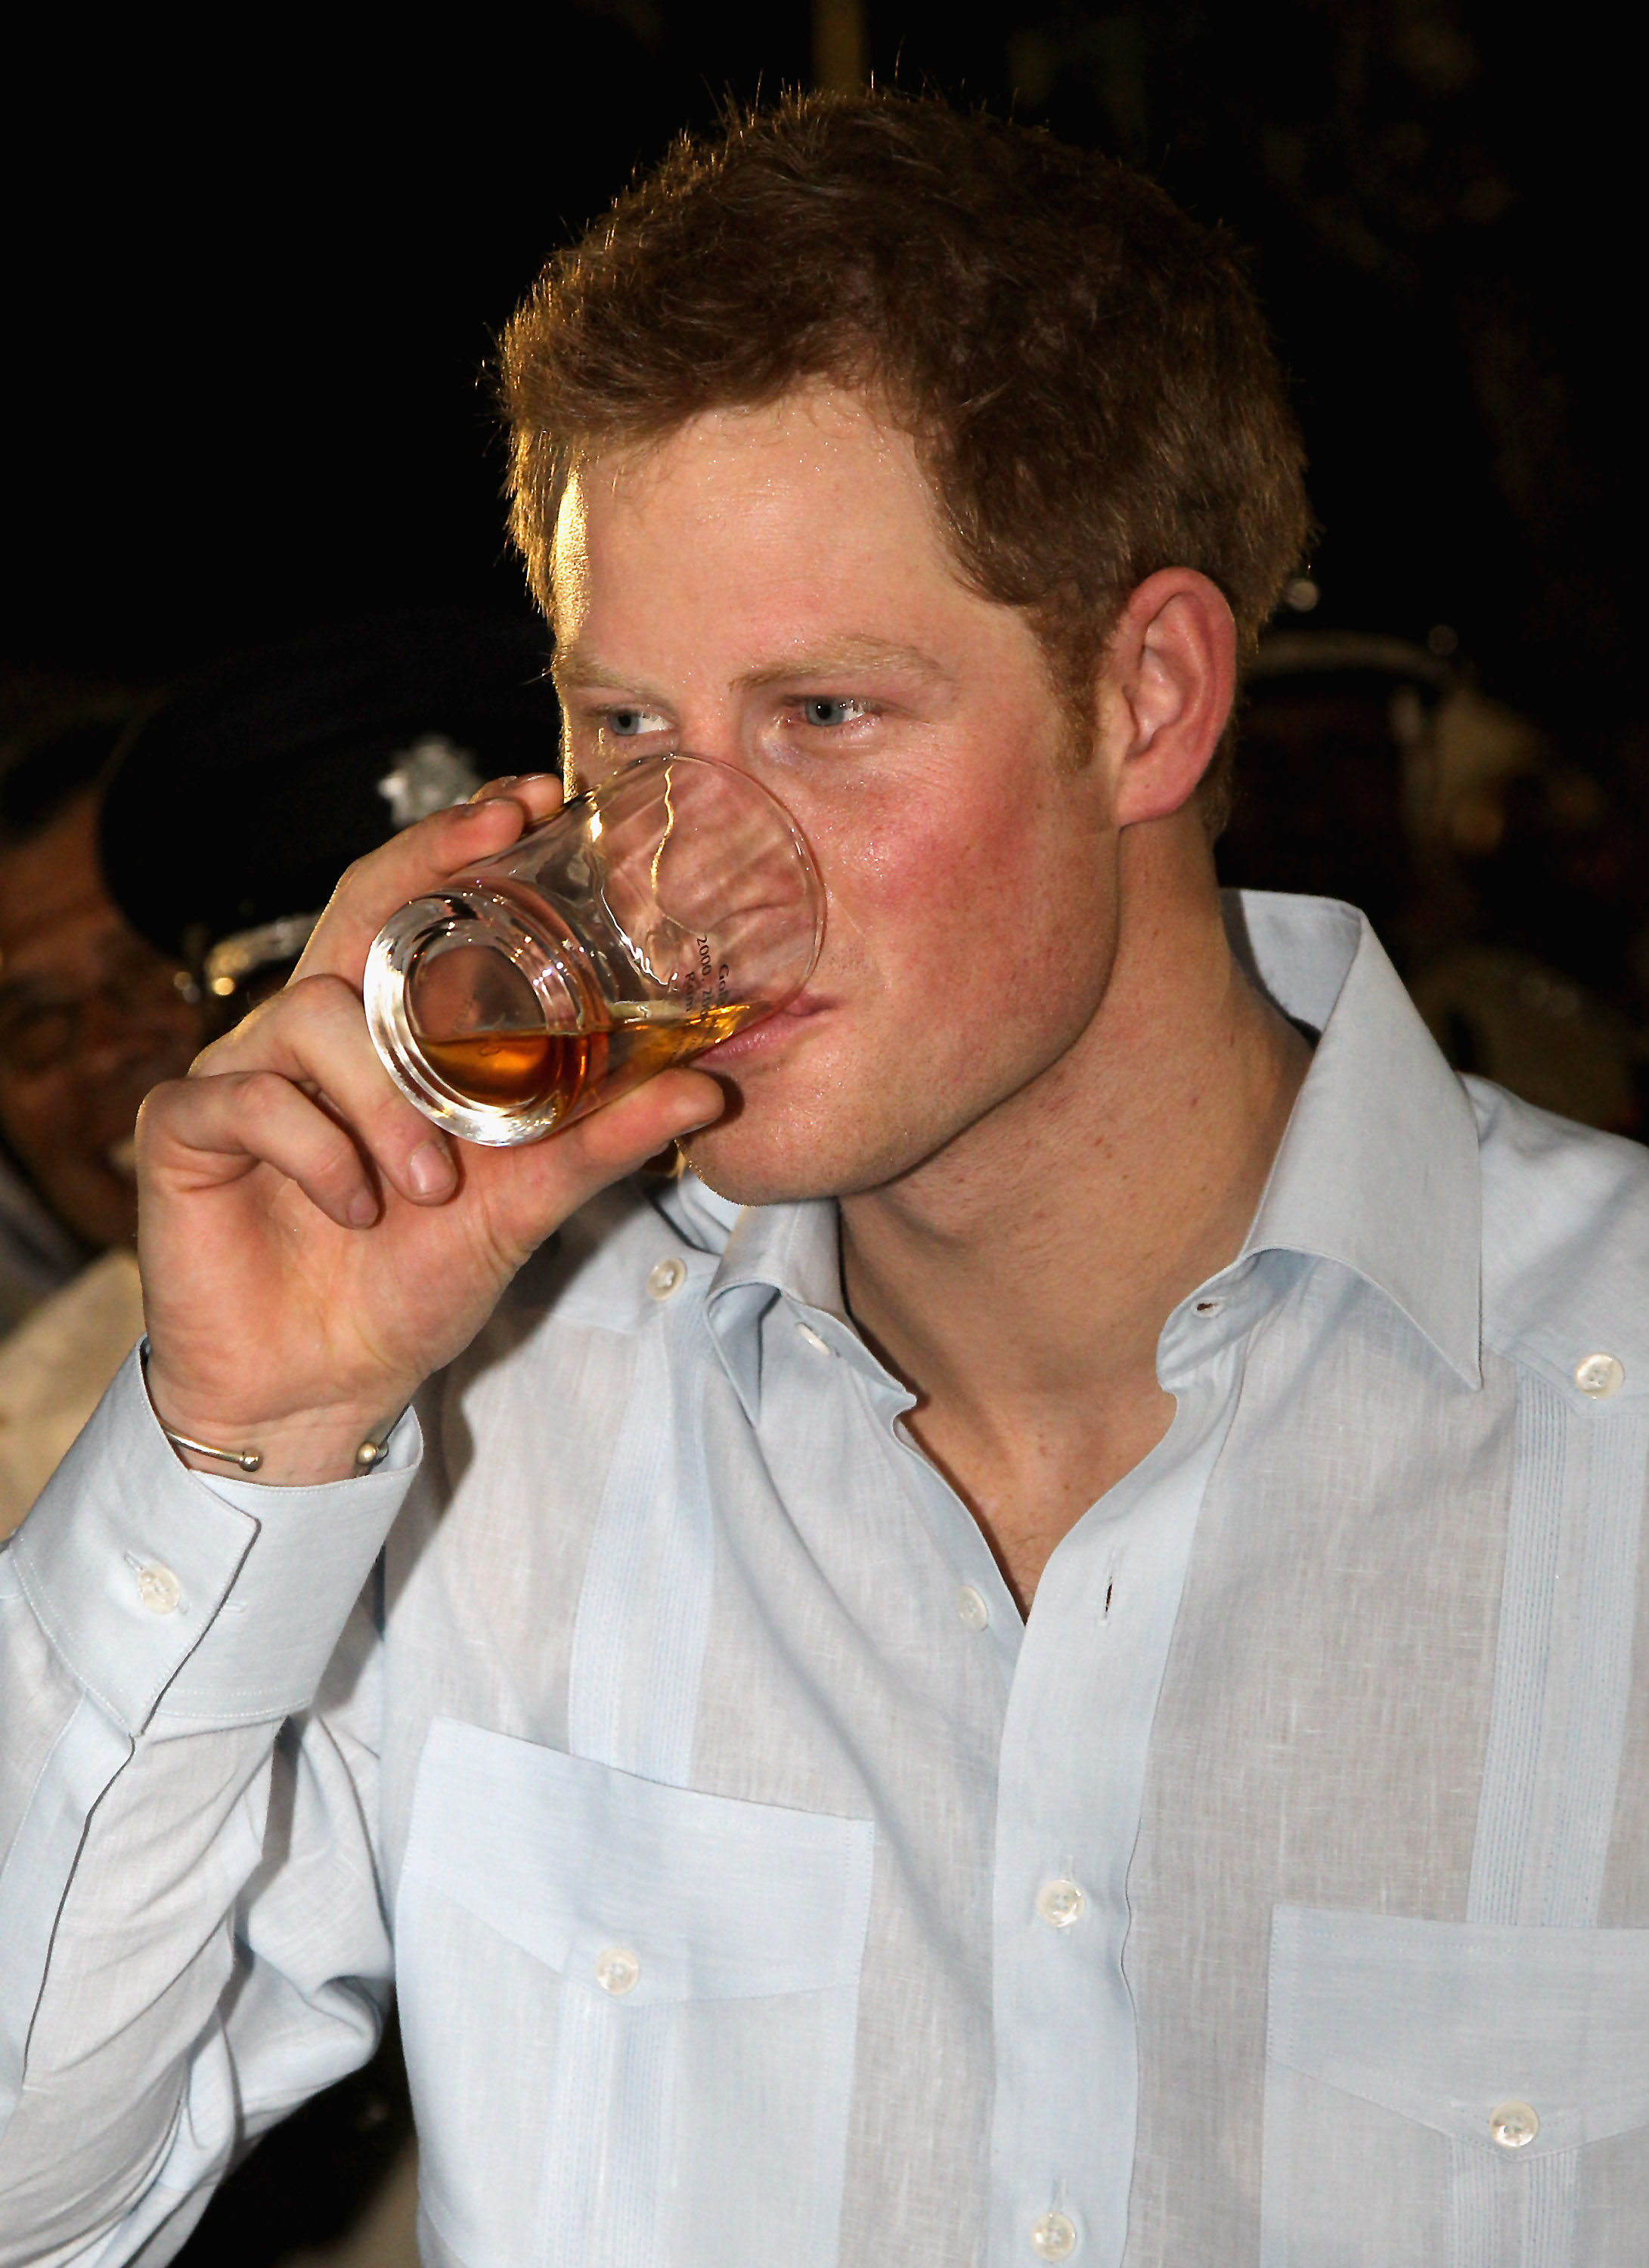 Prince Harry preparing to party.